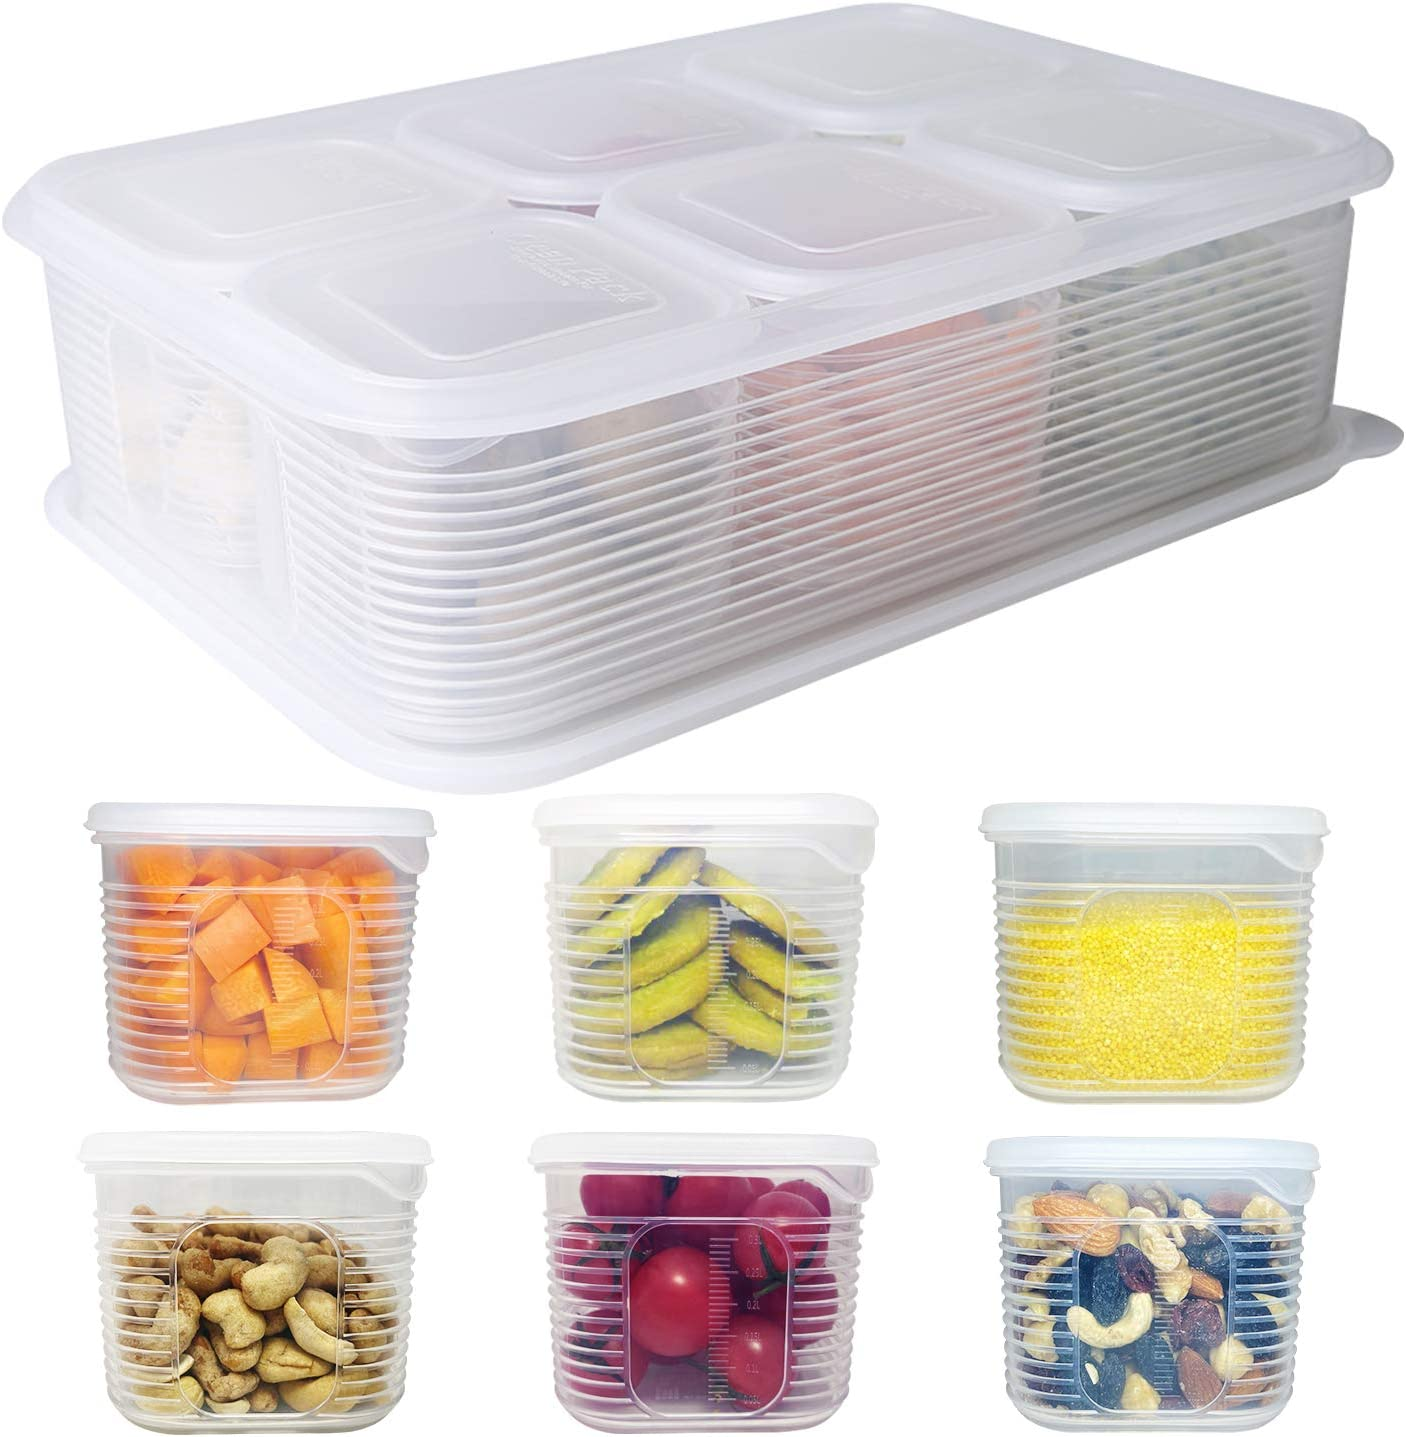 Fridge Food Storage Container- Reusable Fresh Produce Fruit Storage Organizer Plastic Produce Organizer Storage Bin with 6 detachable small boxes to Keep Fresh for Storing Fish, Meat, Vegetables